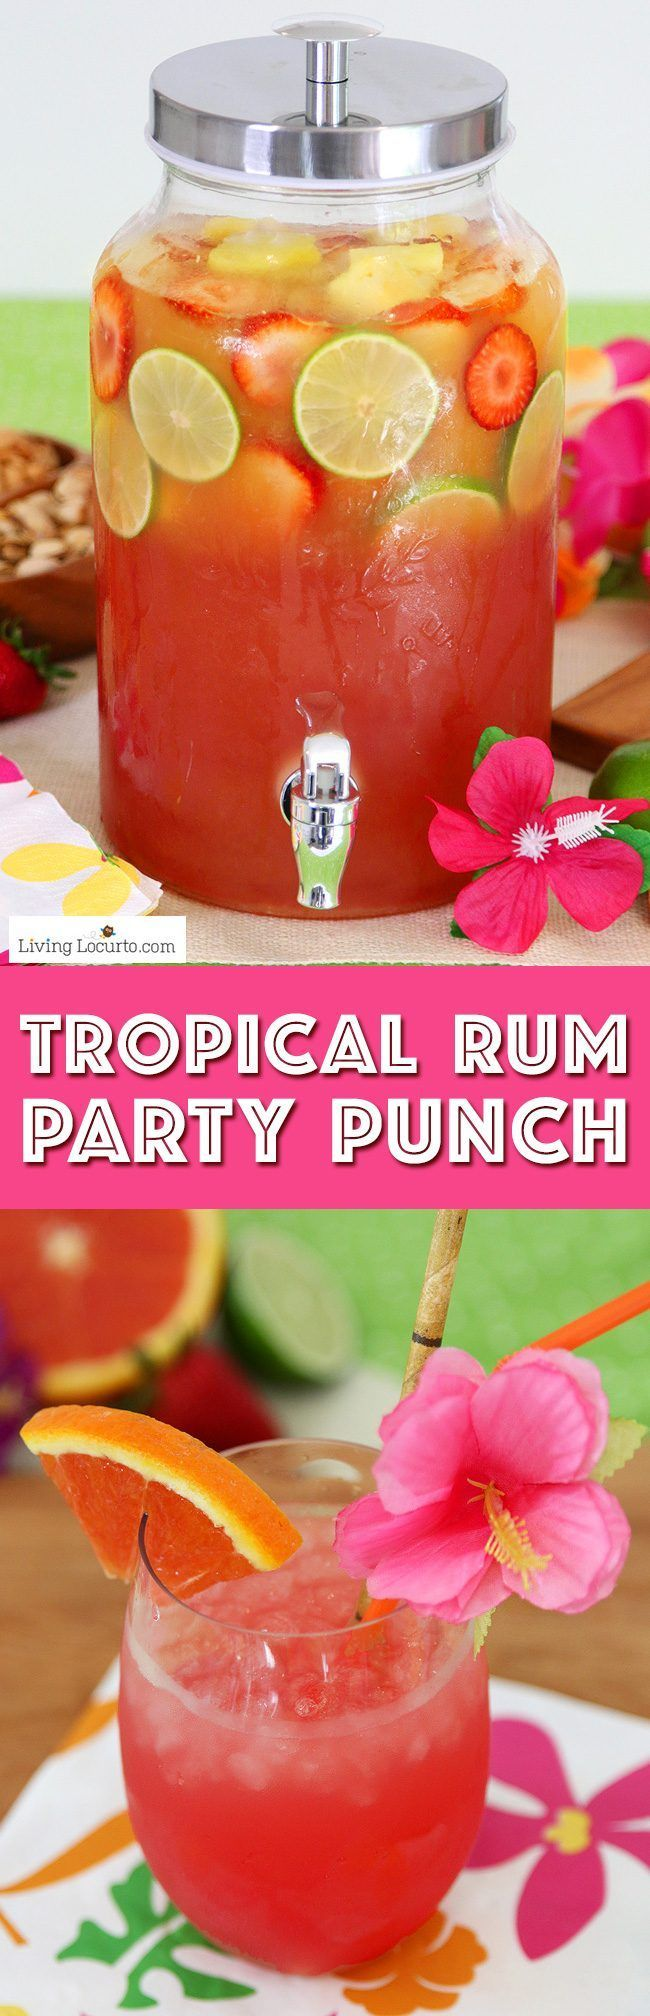 ropical rum punch is a delicious summer cocktail recipe for a luau party or to sip by the pool! A mix of juice and coconut rum for a pretty layered drink.